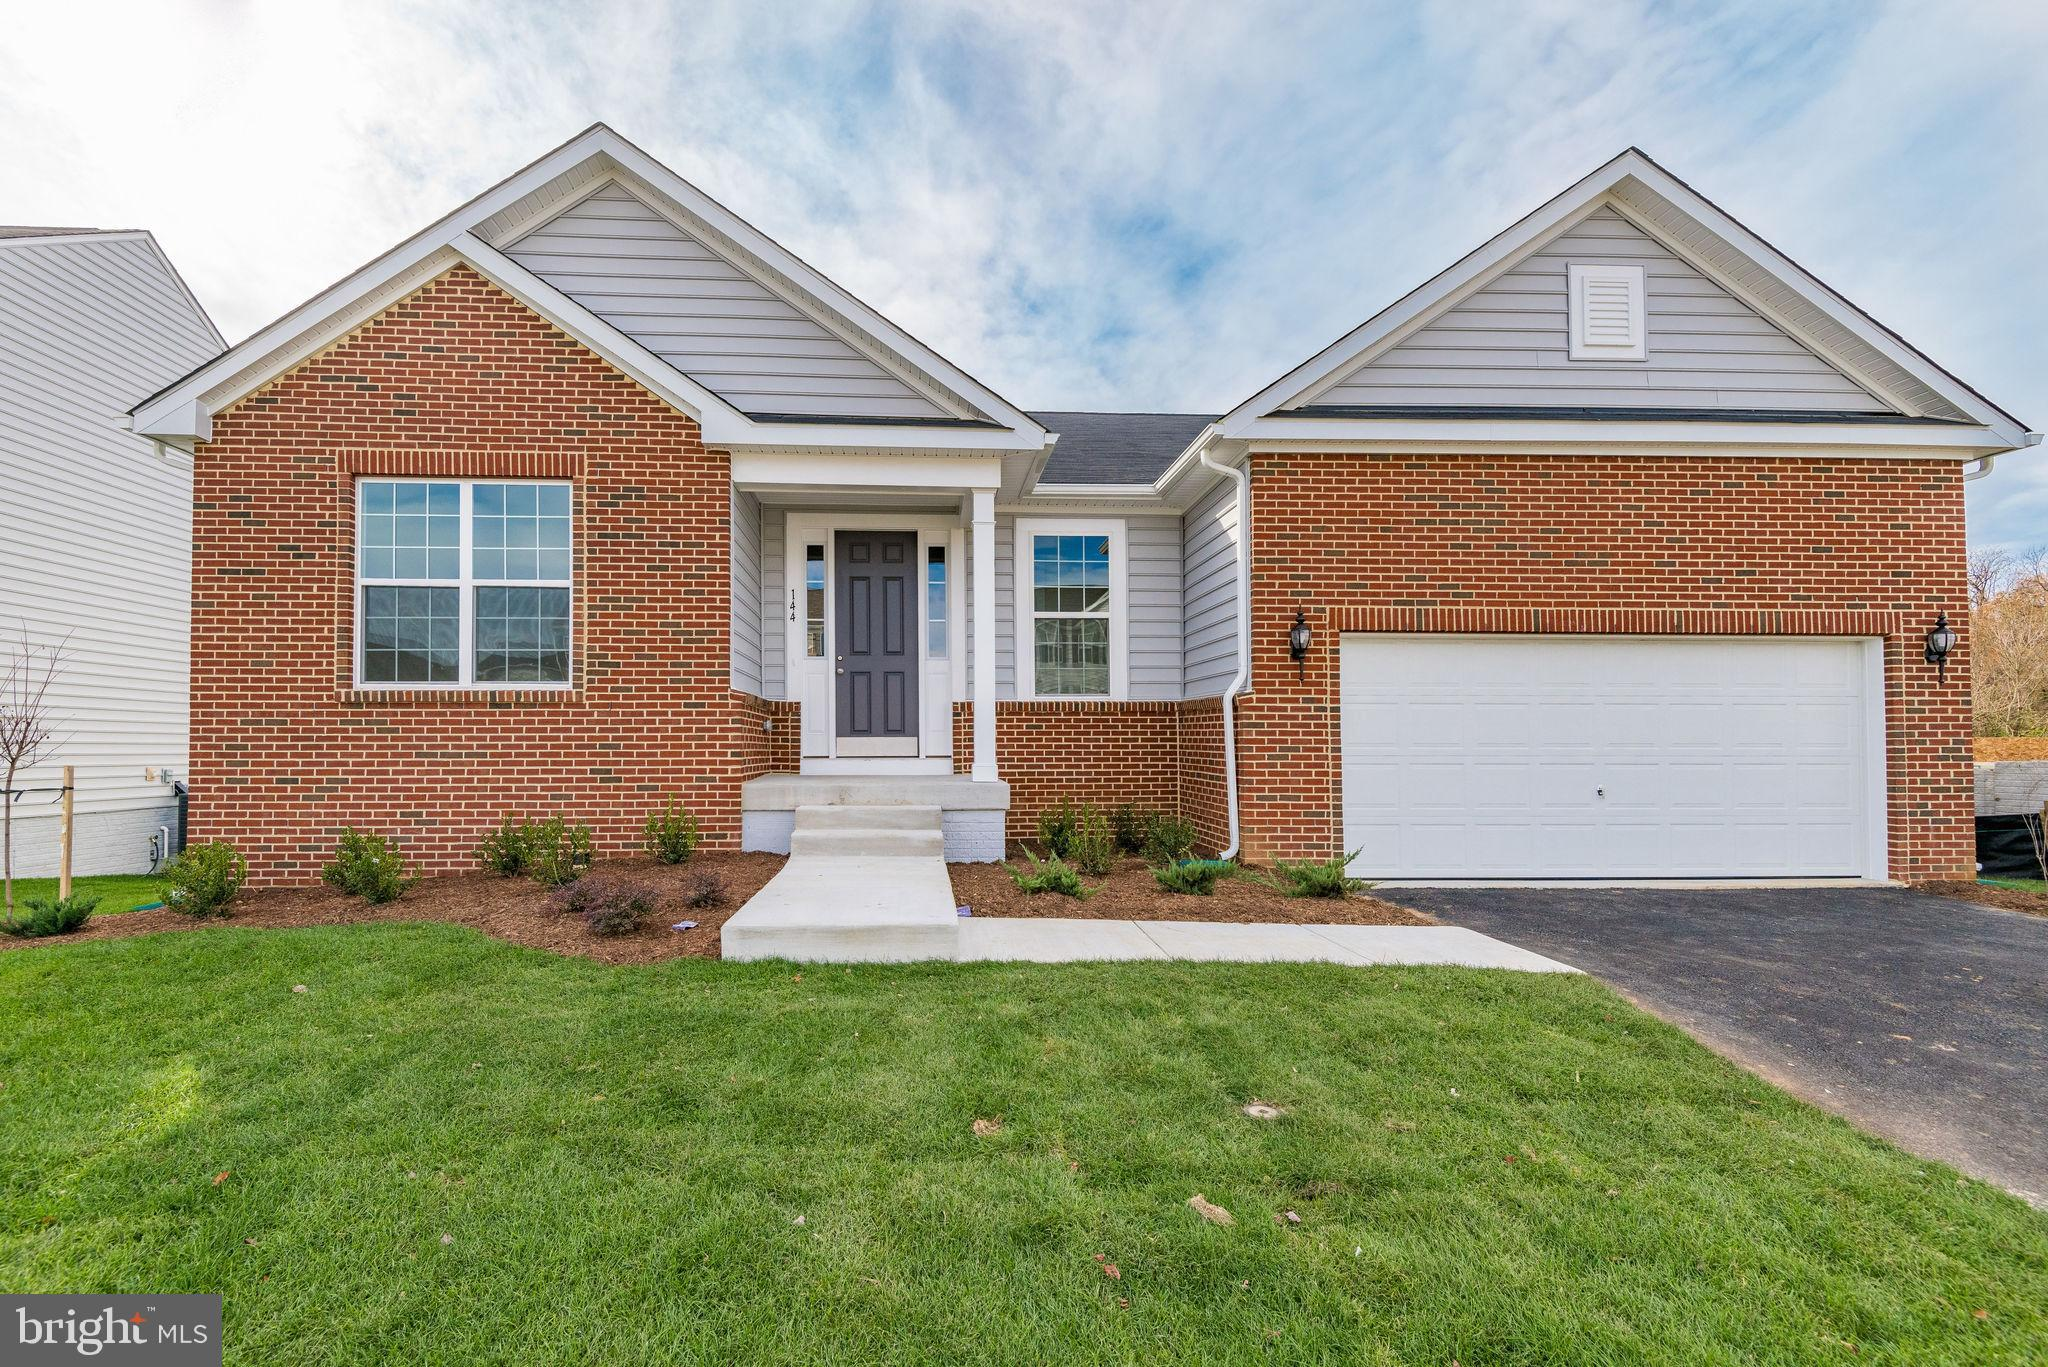 This home is brand new and ready for you to move in!!! Main level living with hardwood floors, full